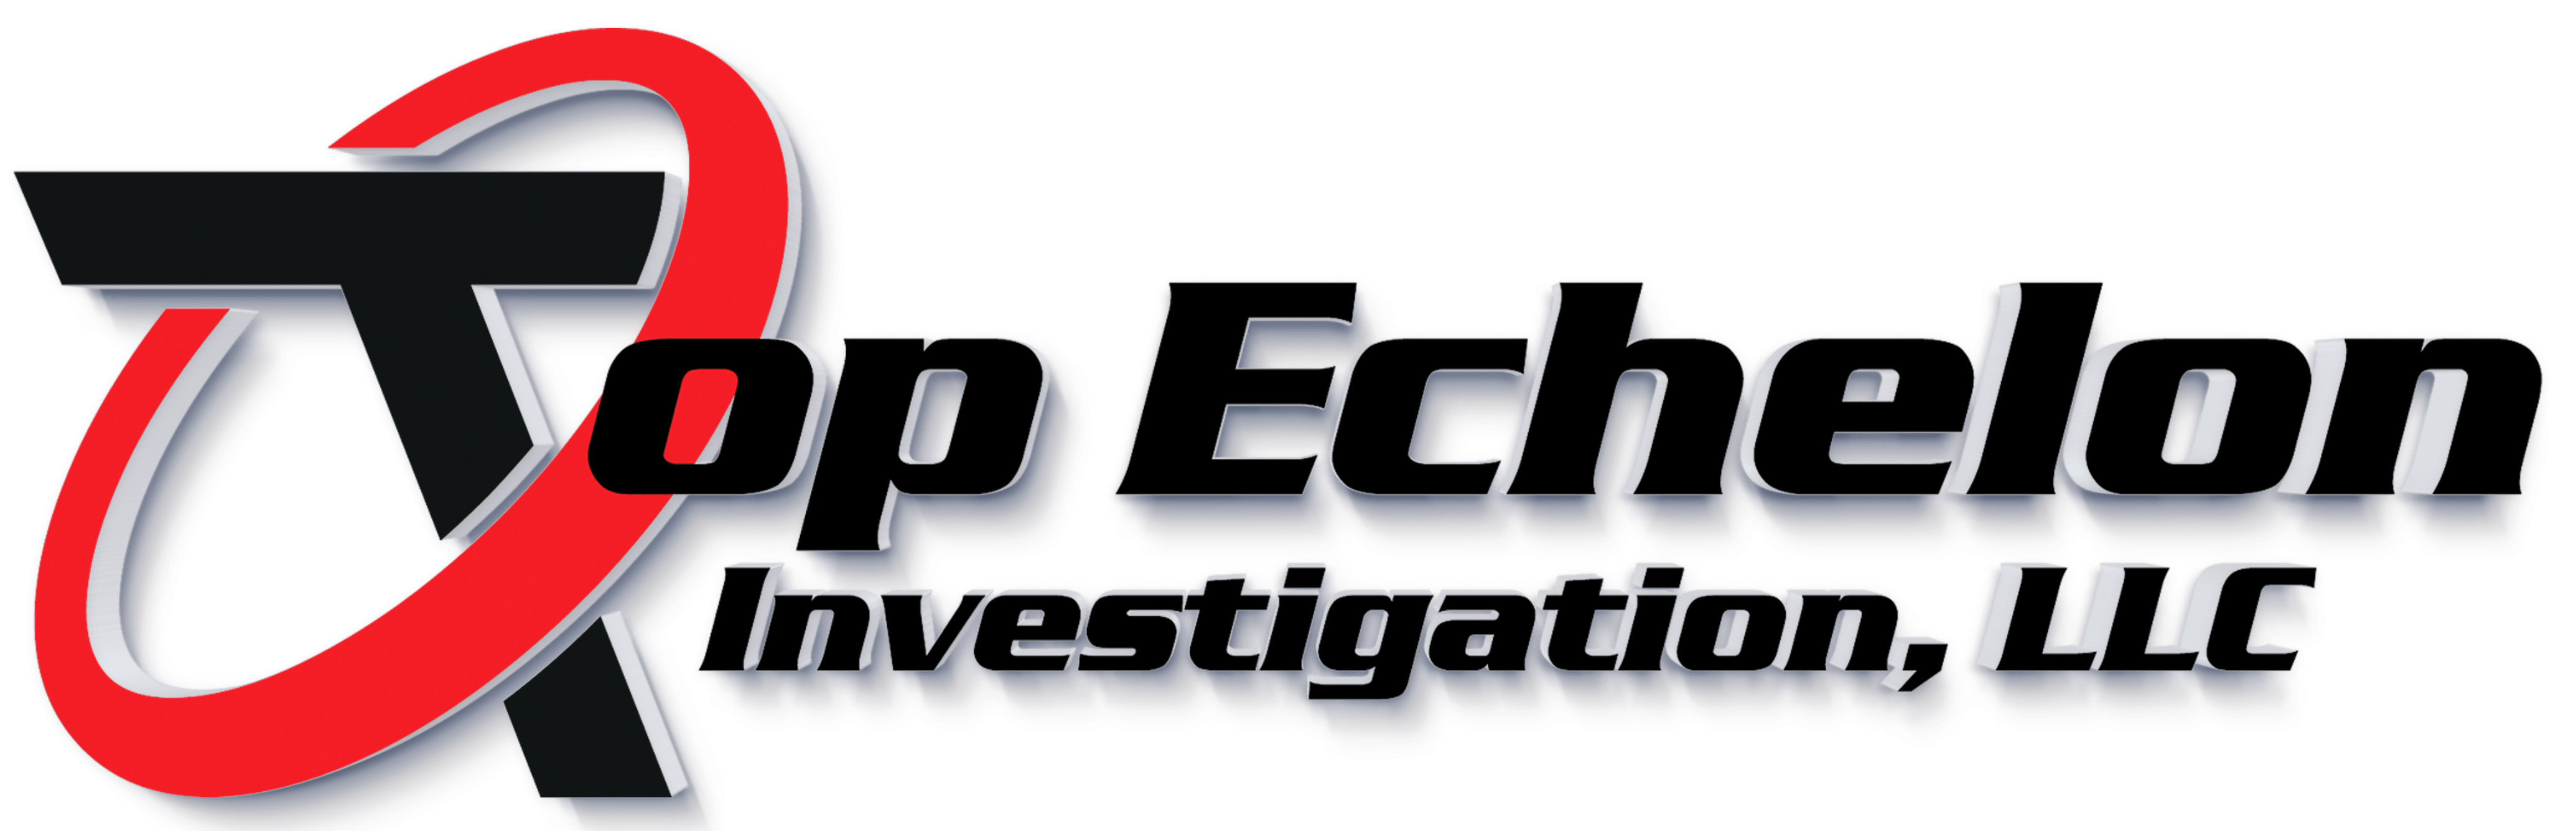 Top Echelon's Process Servers in Gulfport, MS Handle Tough Serves!